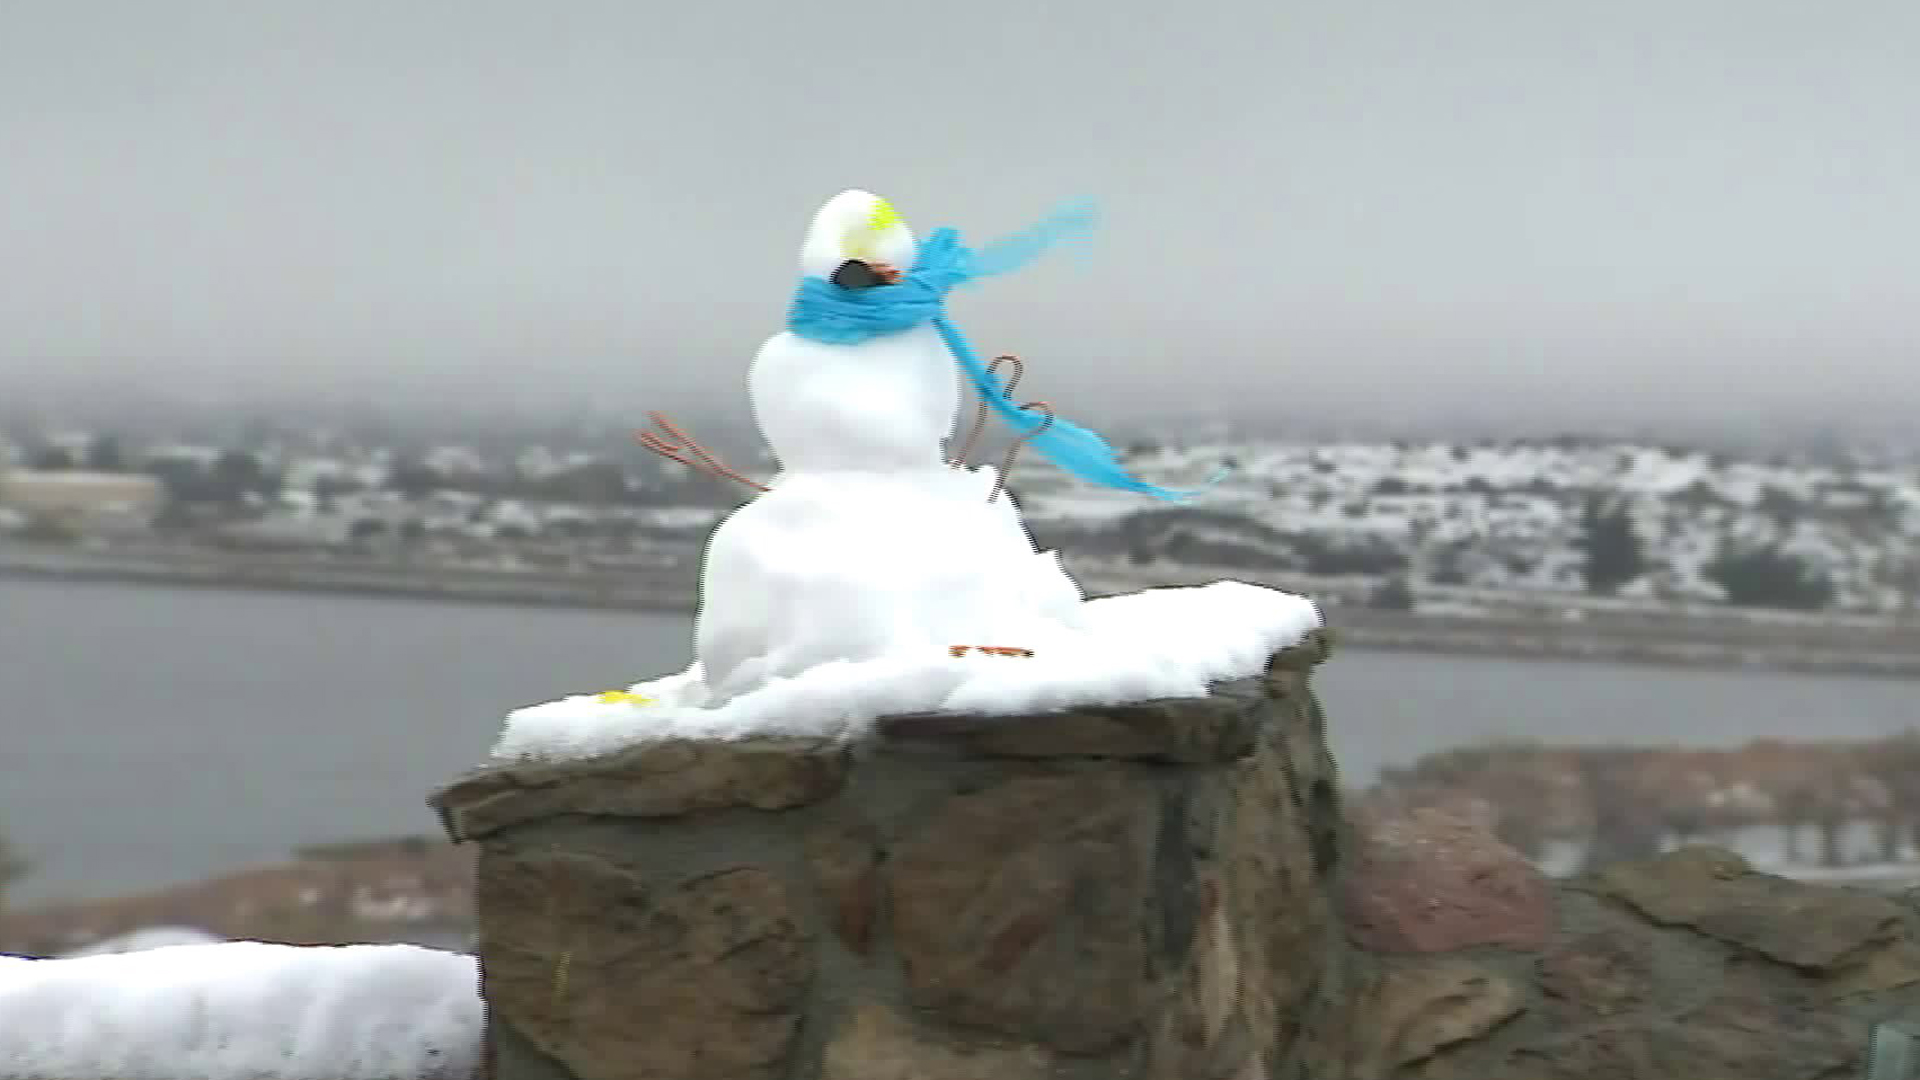 Someone built a snowman in Palmdale as heavy snow blanketed the area on Dec. 26, 2019. (Credit: KTLA)